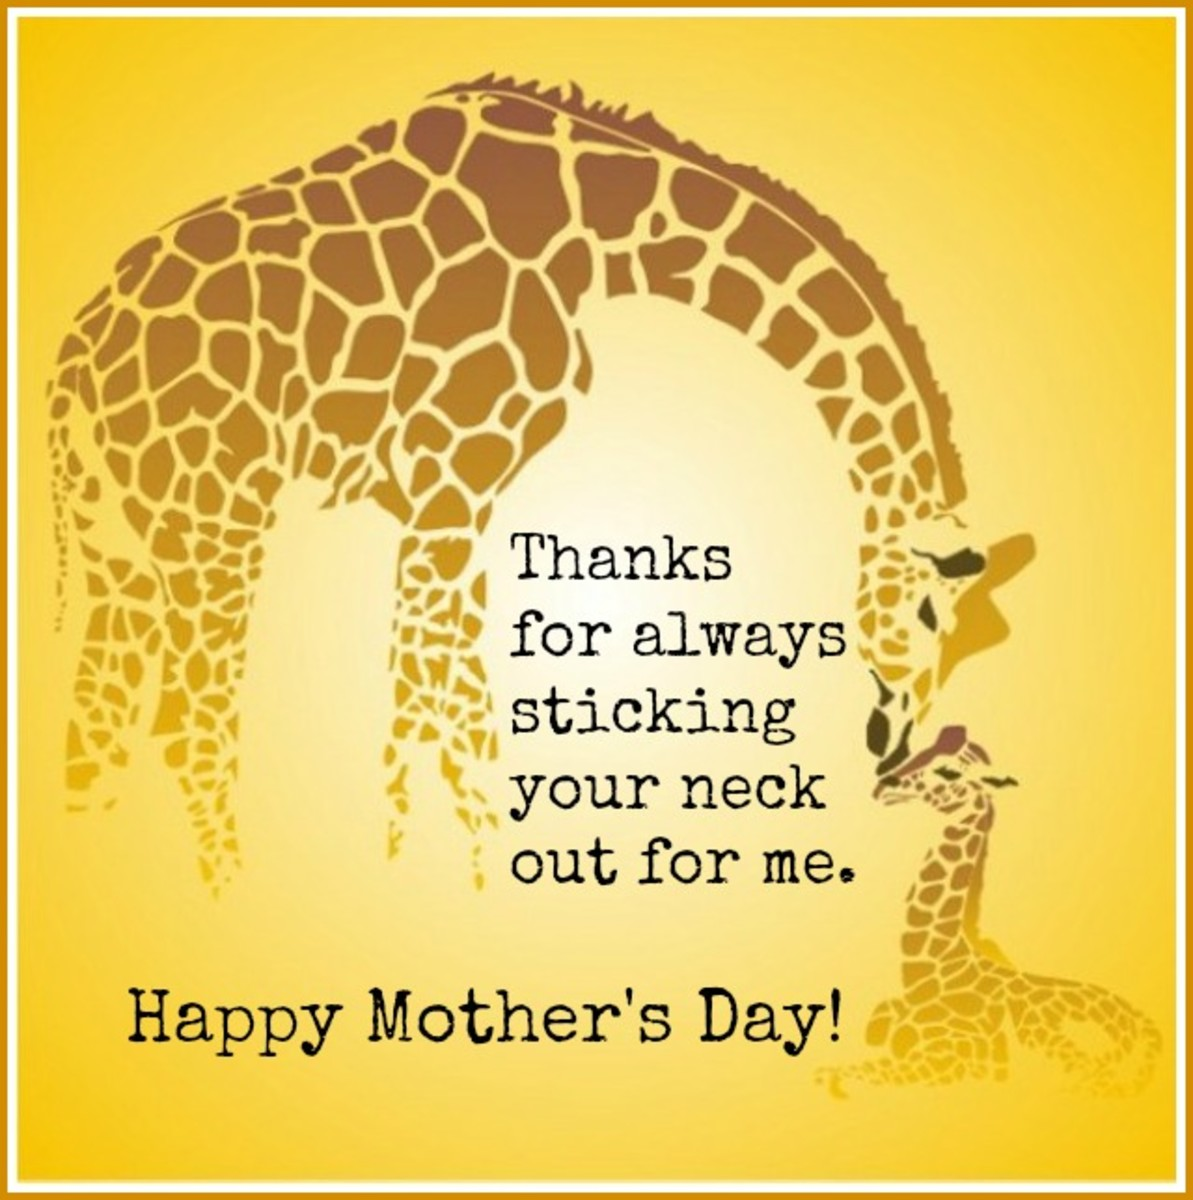 Mother's Day Message with Giraffes